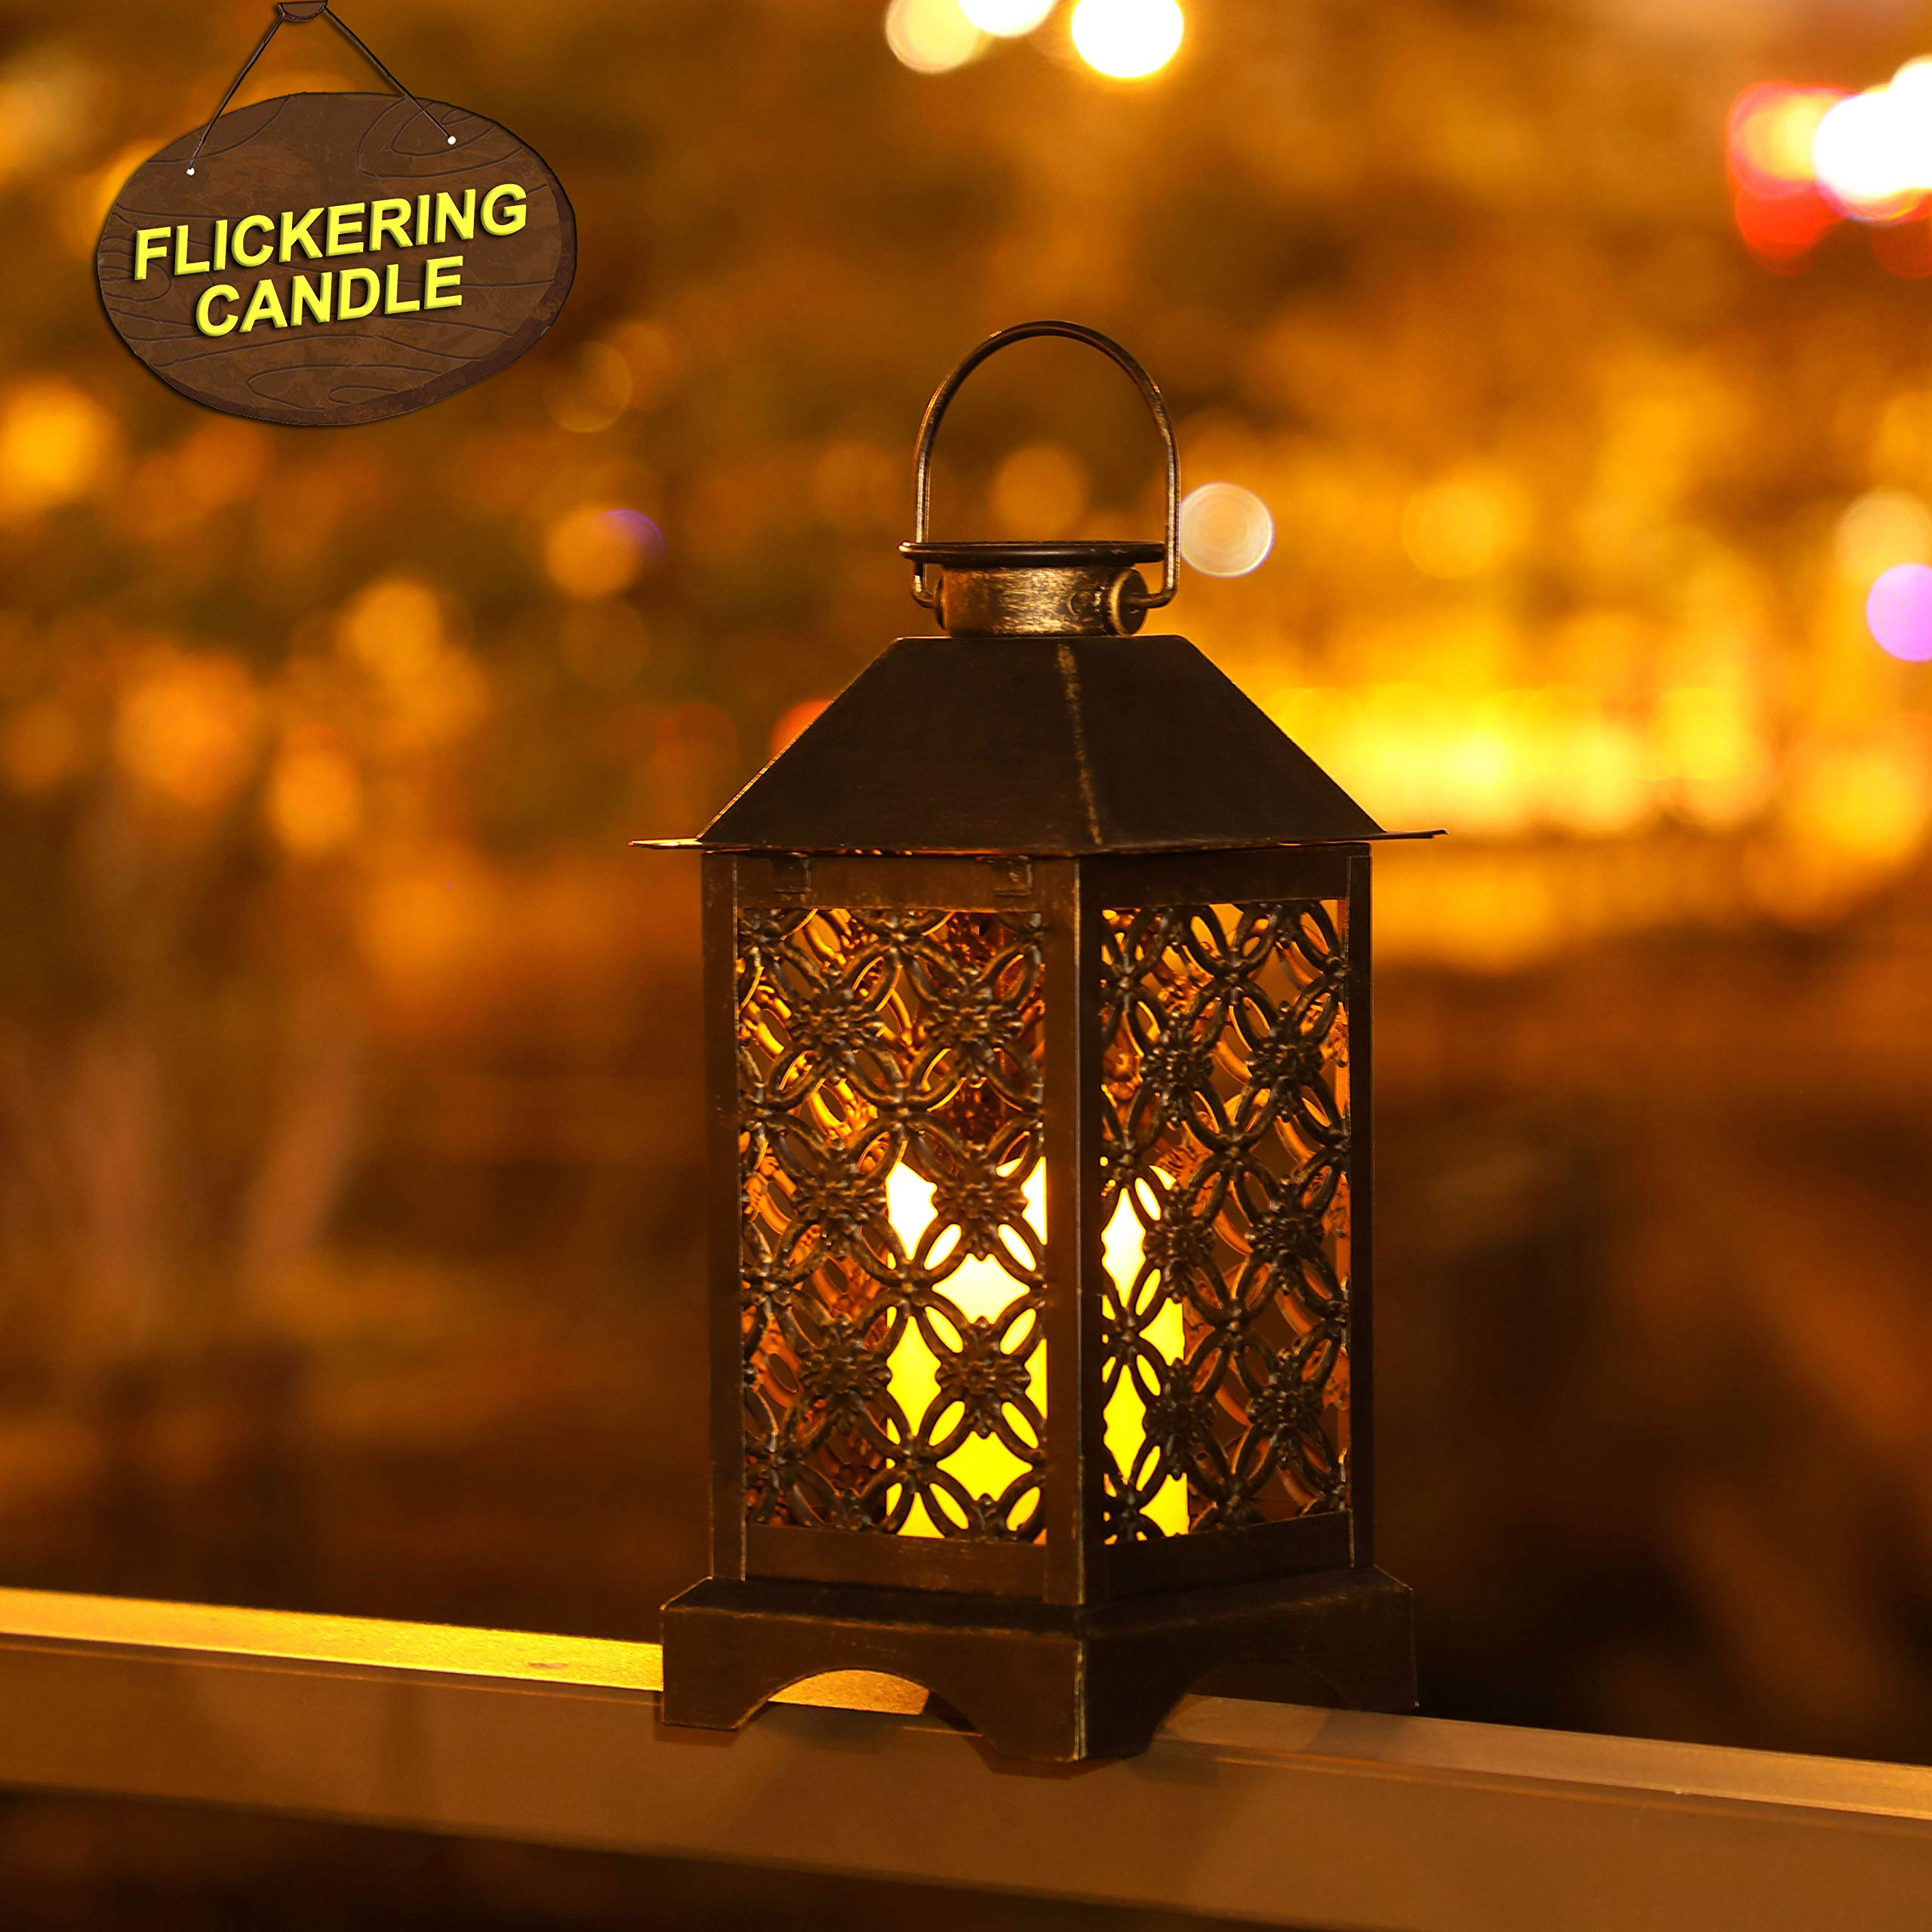 Solar Lantern Indoor or Outdoor 4LeafClover Bronze   Antique Metal Construction   Solar Powered Hanging Lantern or Tabletop with LED Flickering Candle 5.5 x 5.5 x 11 inches